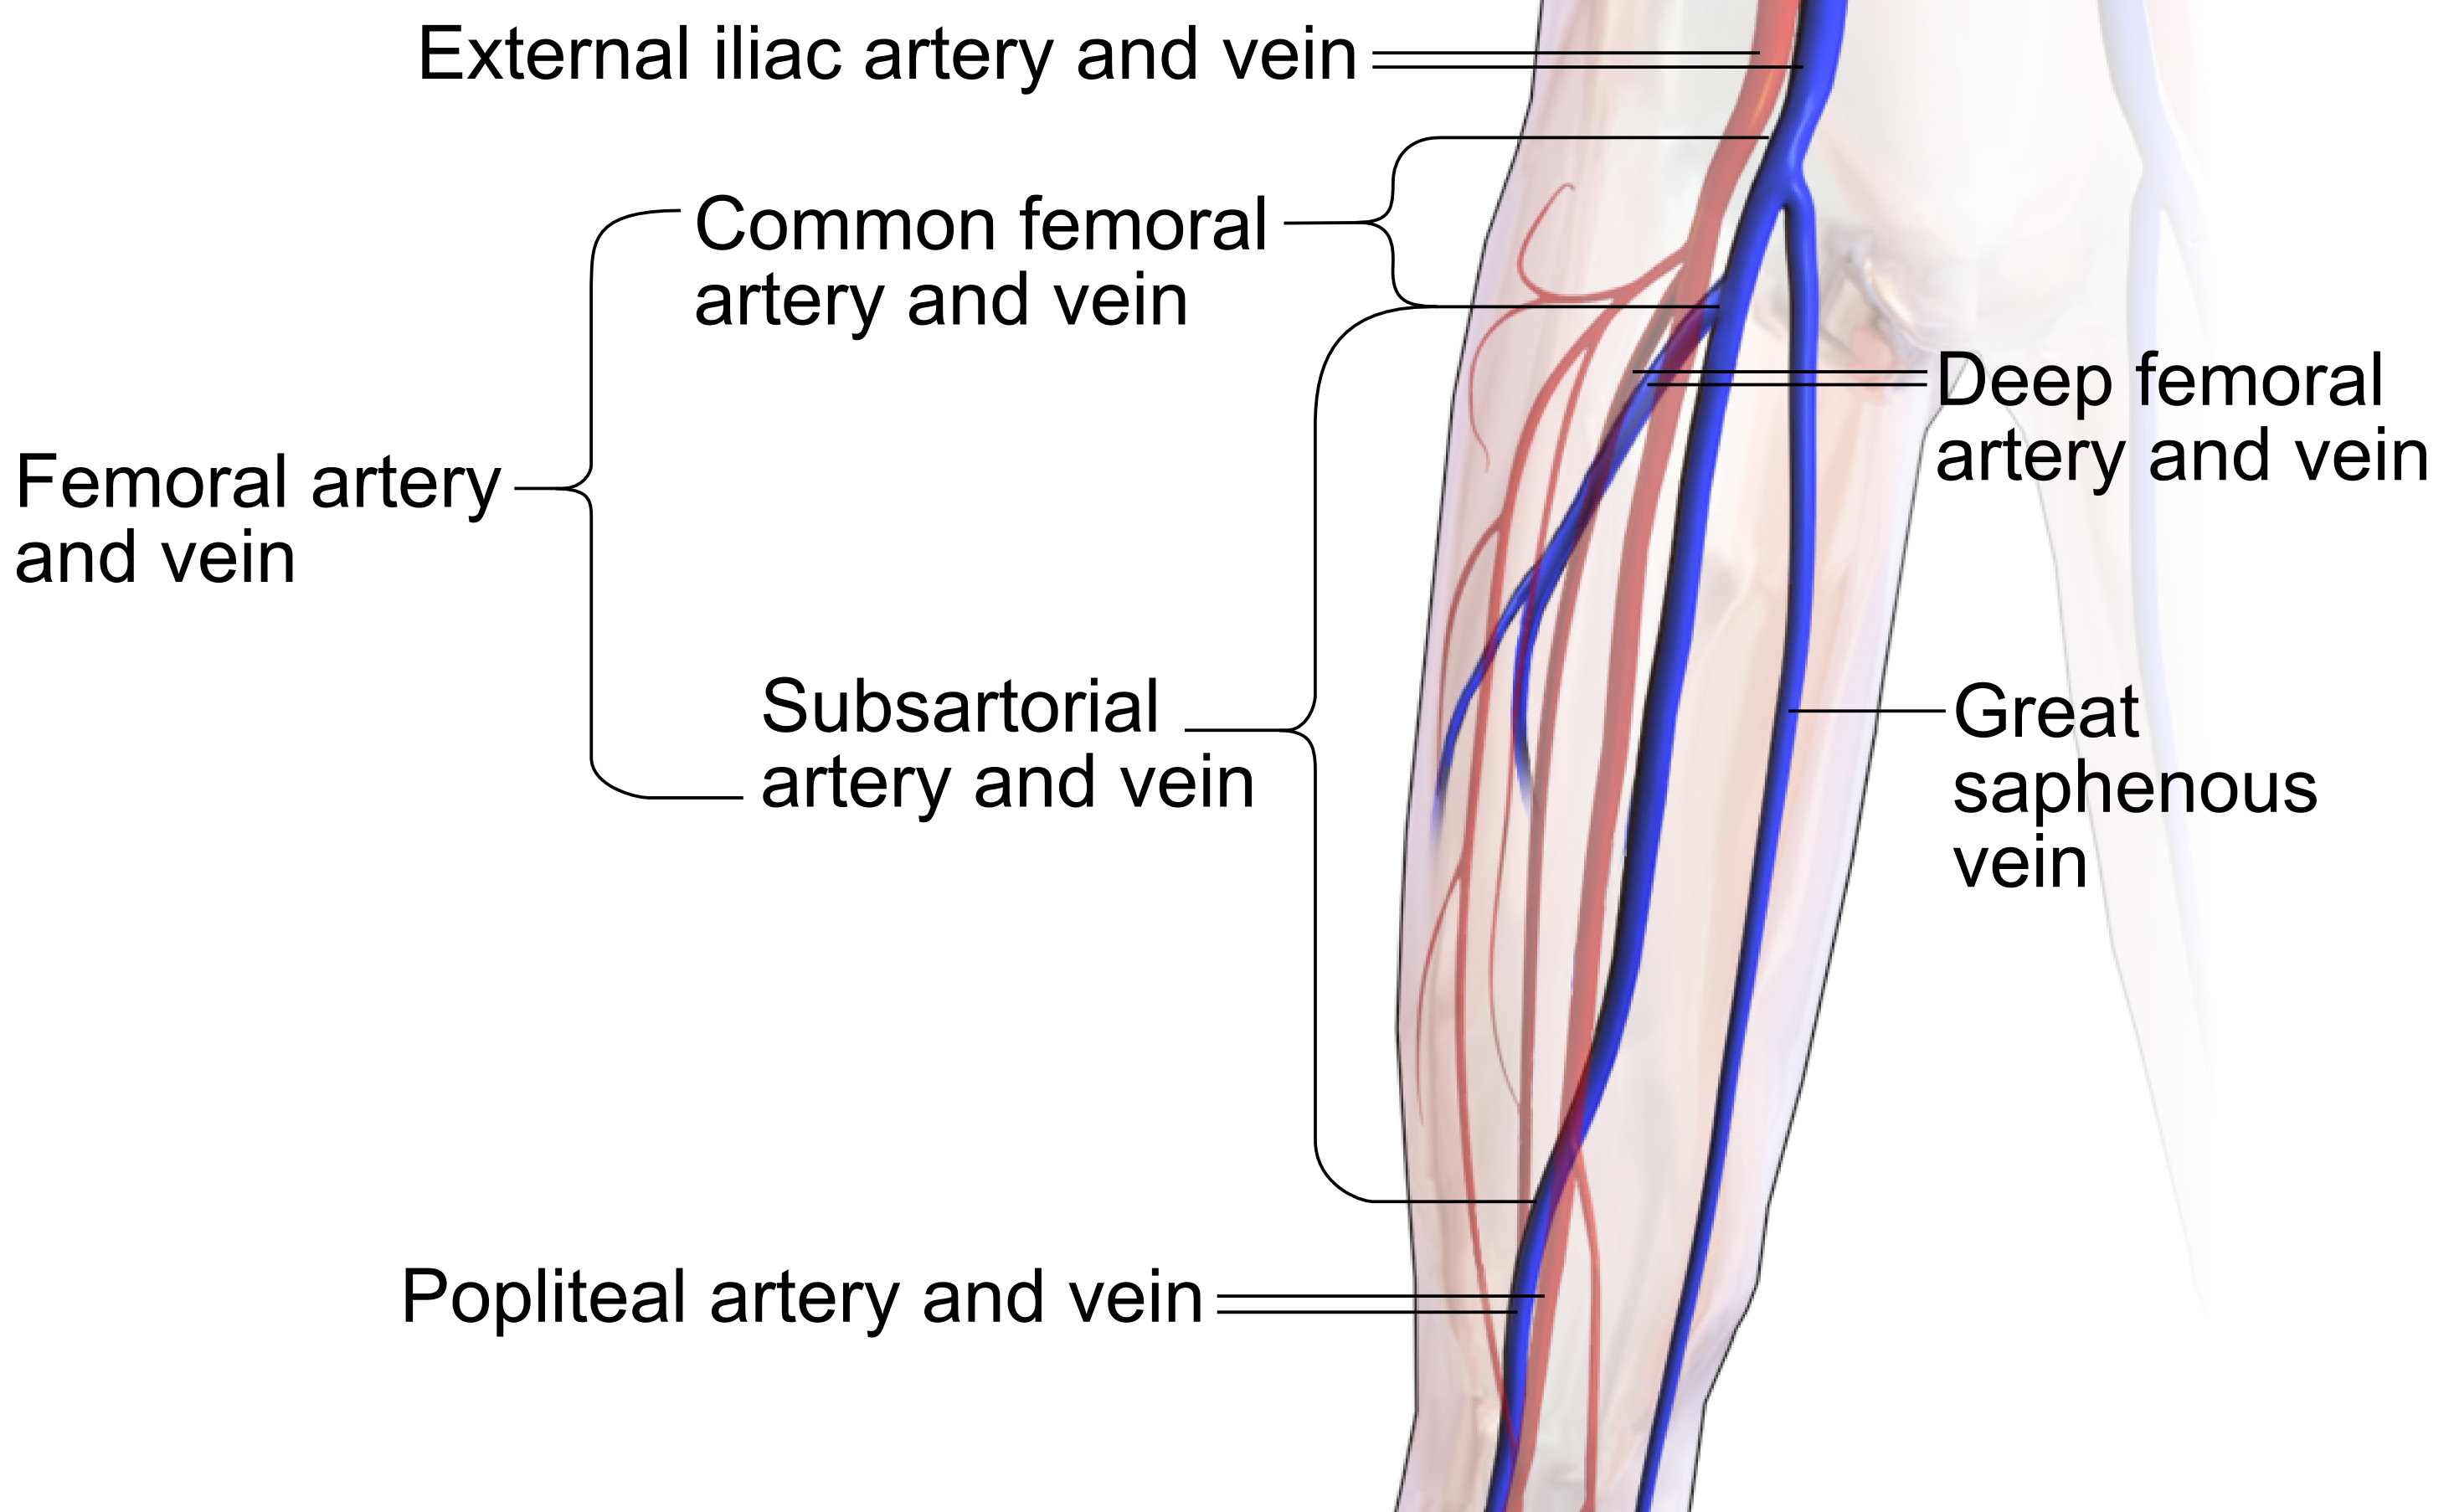 Arteries And Veins Diagram Filecommon Femoral And Subsartorial Artery And Vein Wikimedia